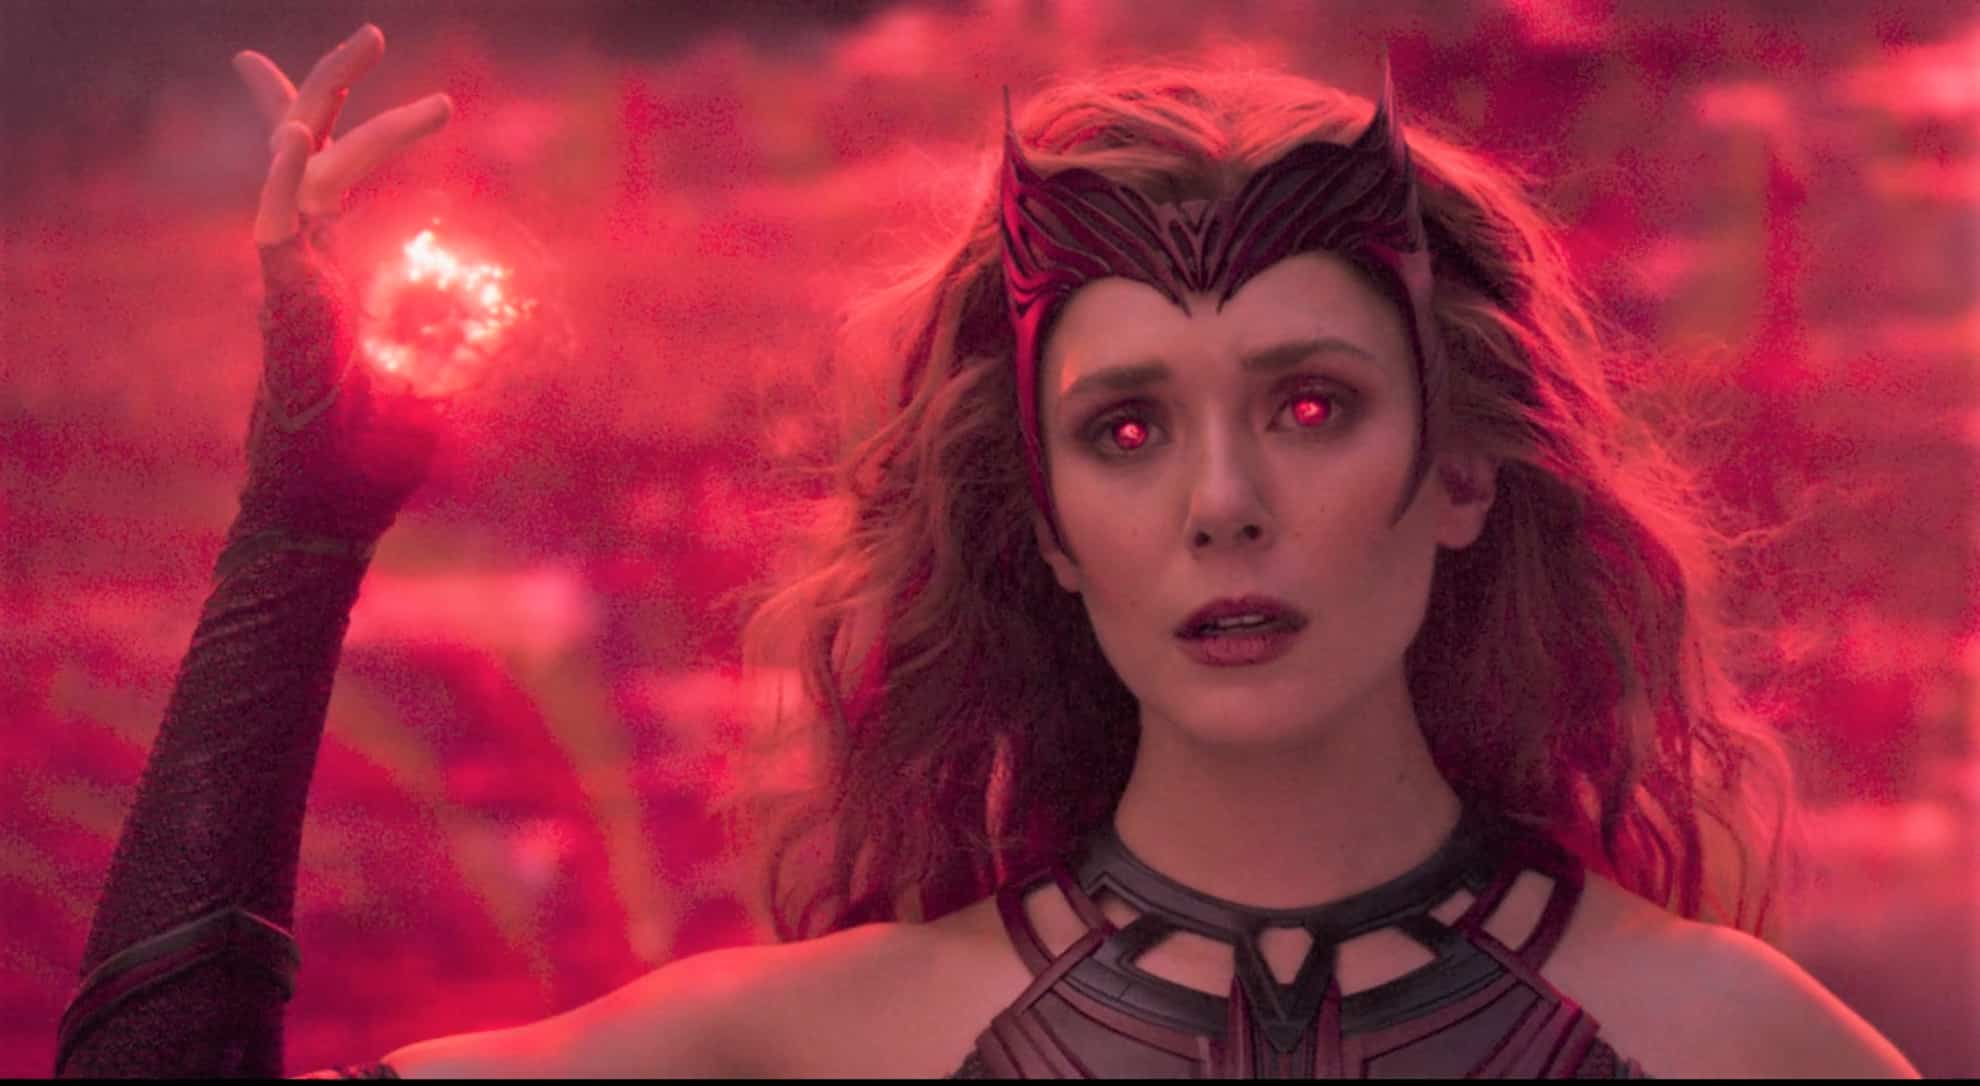 Marvels Avengers Scarlet Witch